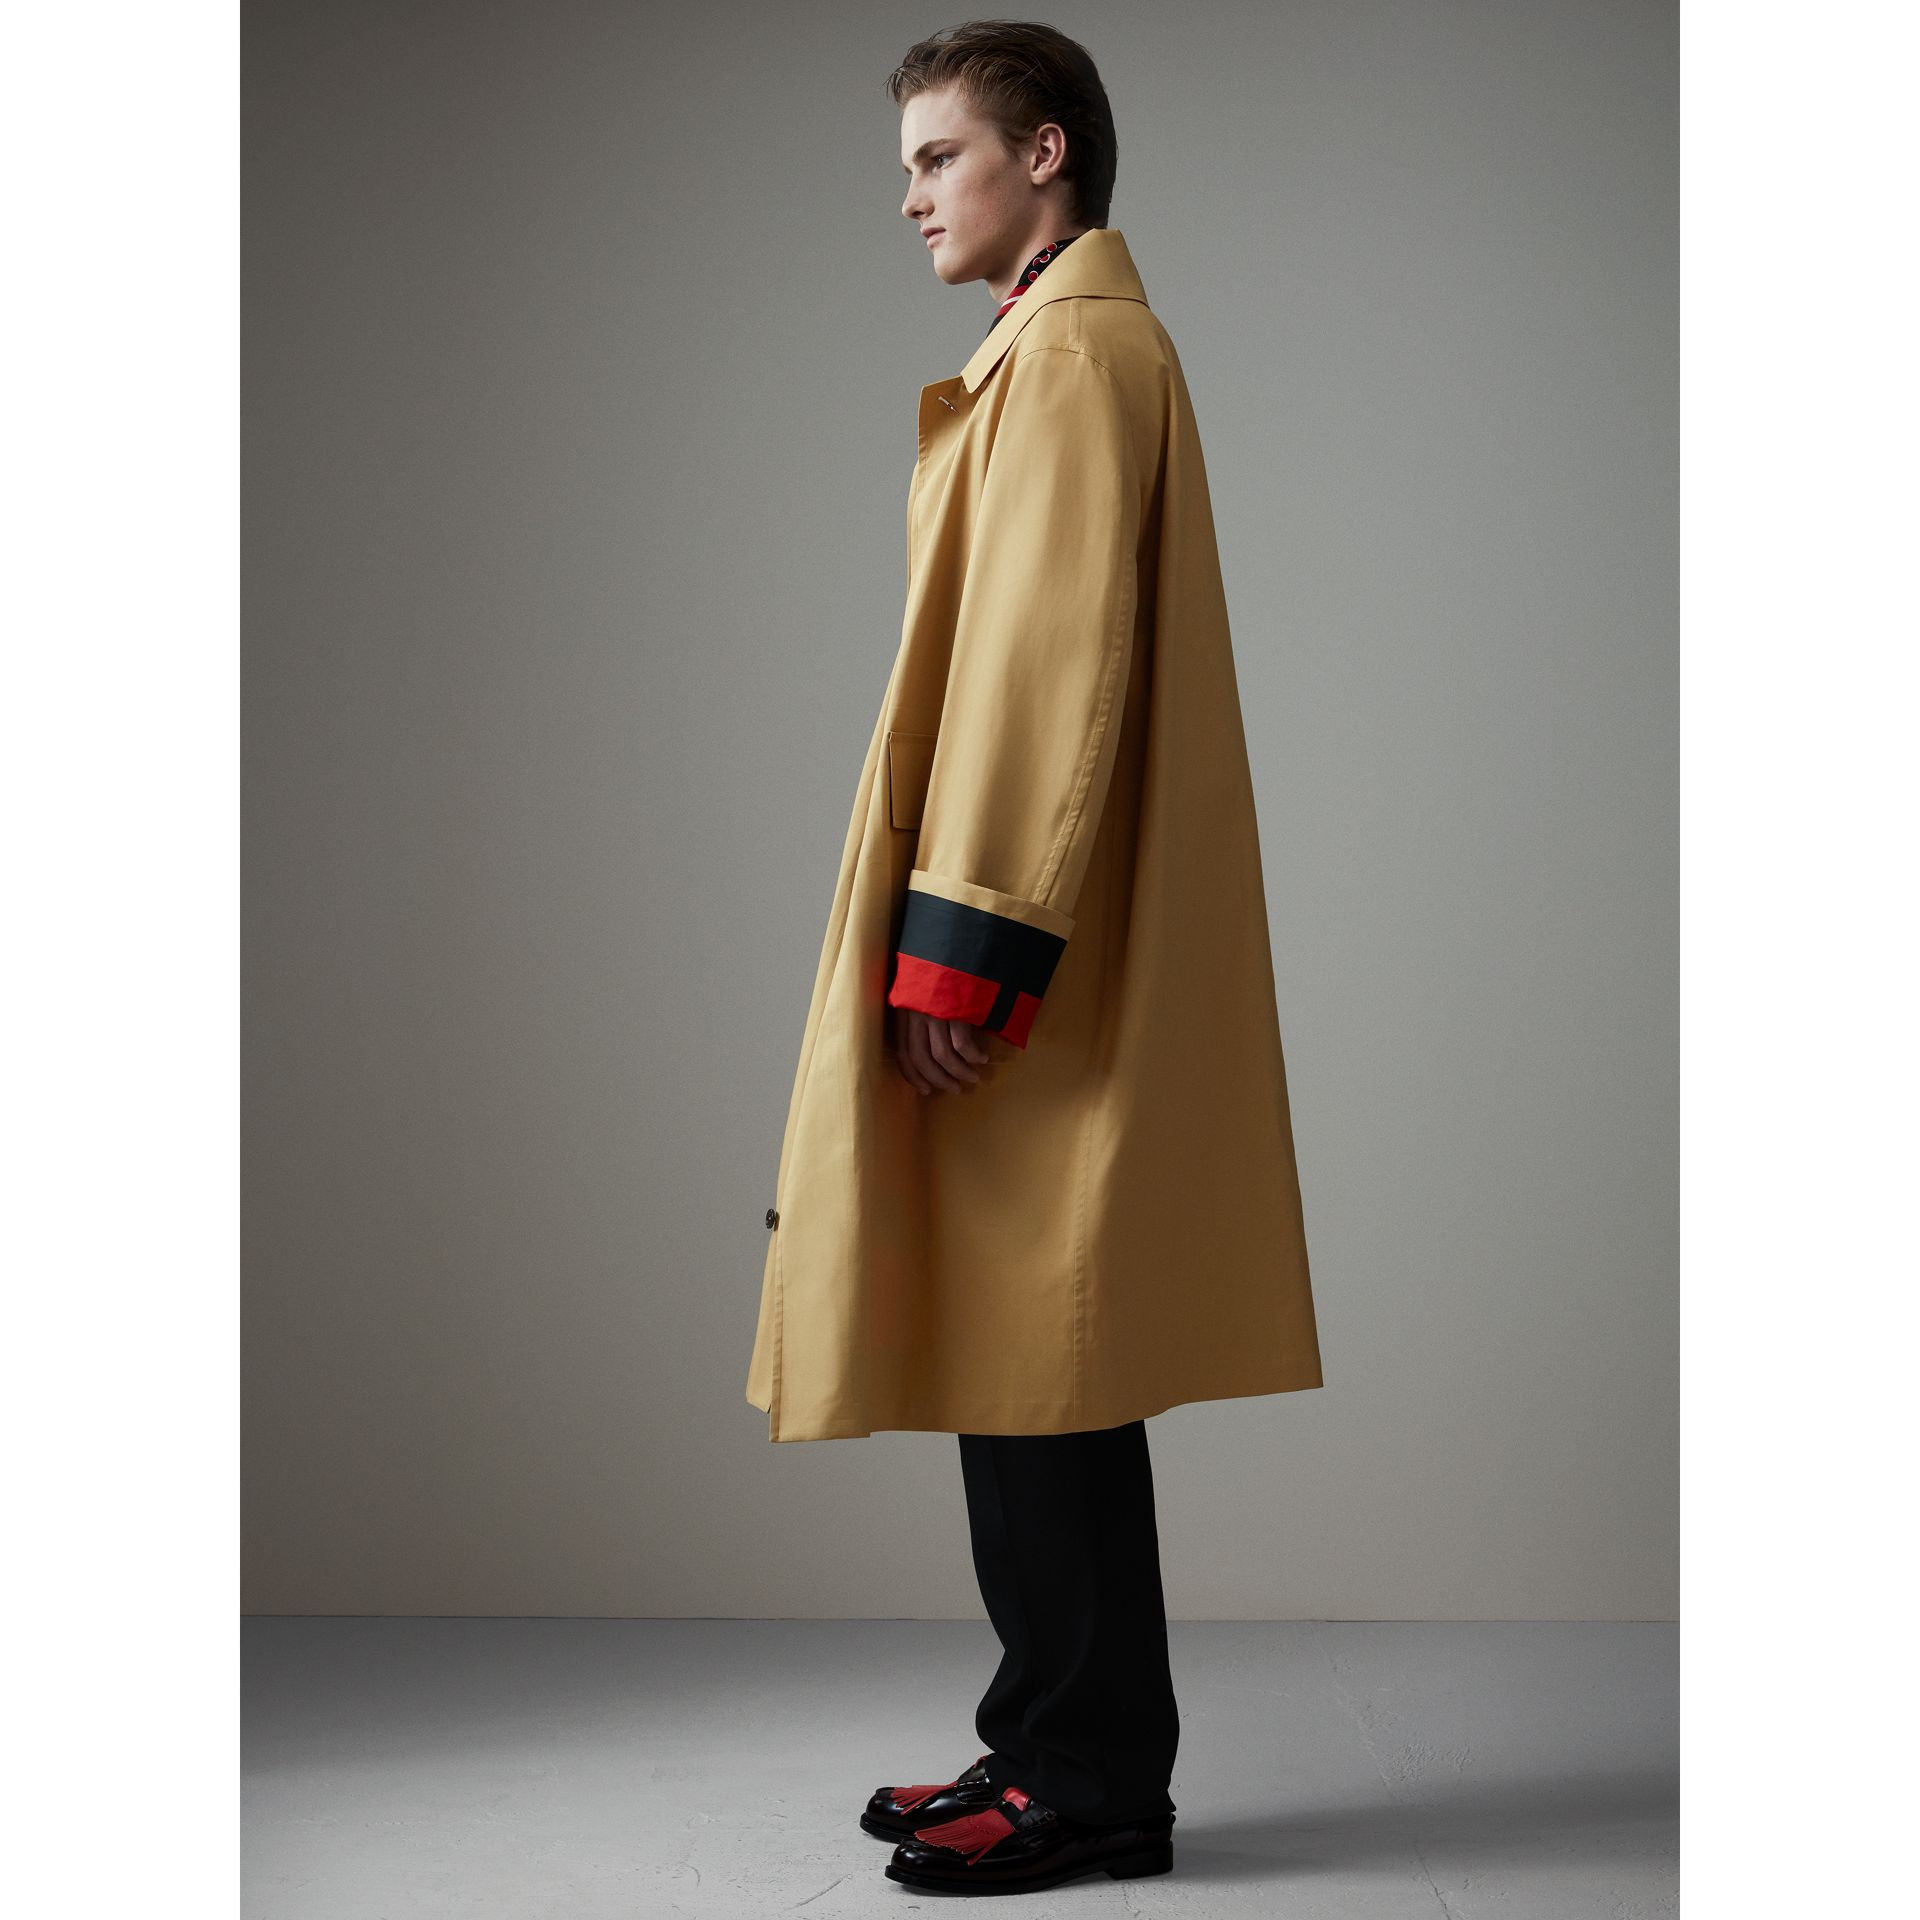 Bonded Cotton Oversized Seam-sealed Car Coat in Beige/red - Men | Burberry - gallery image 4